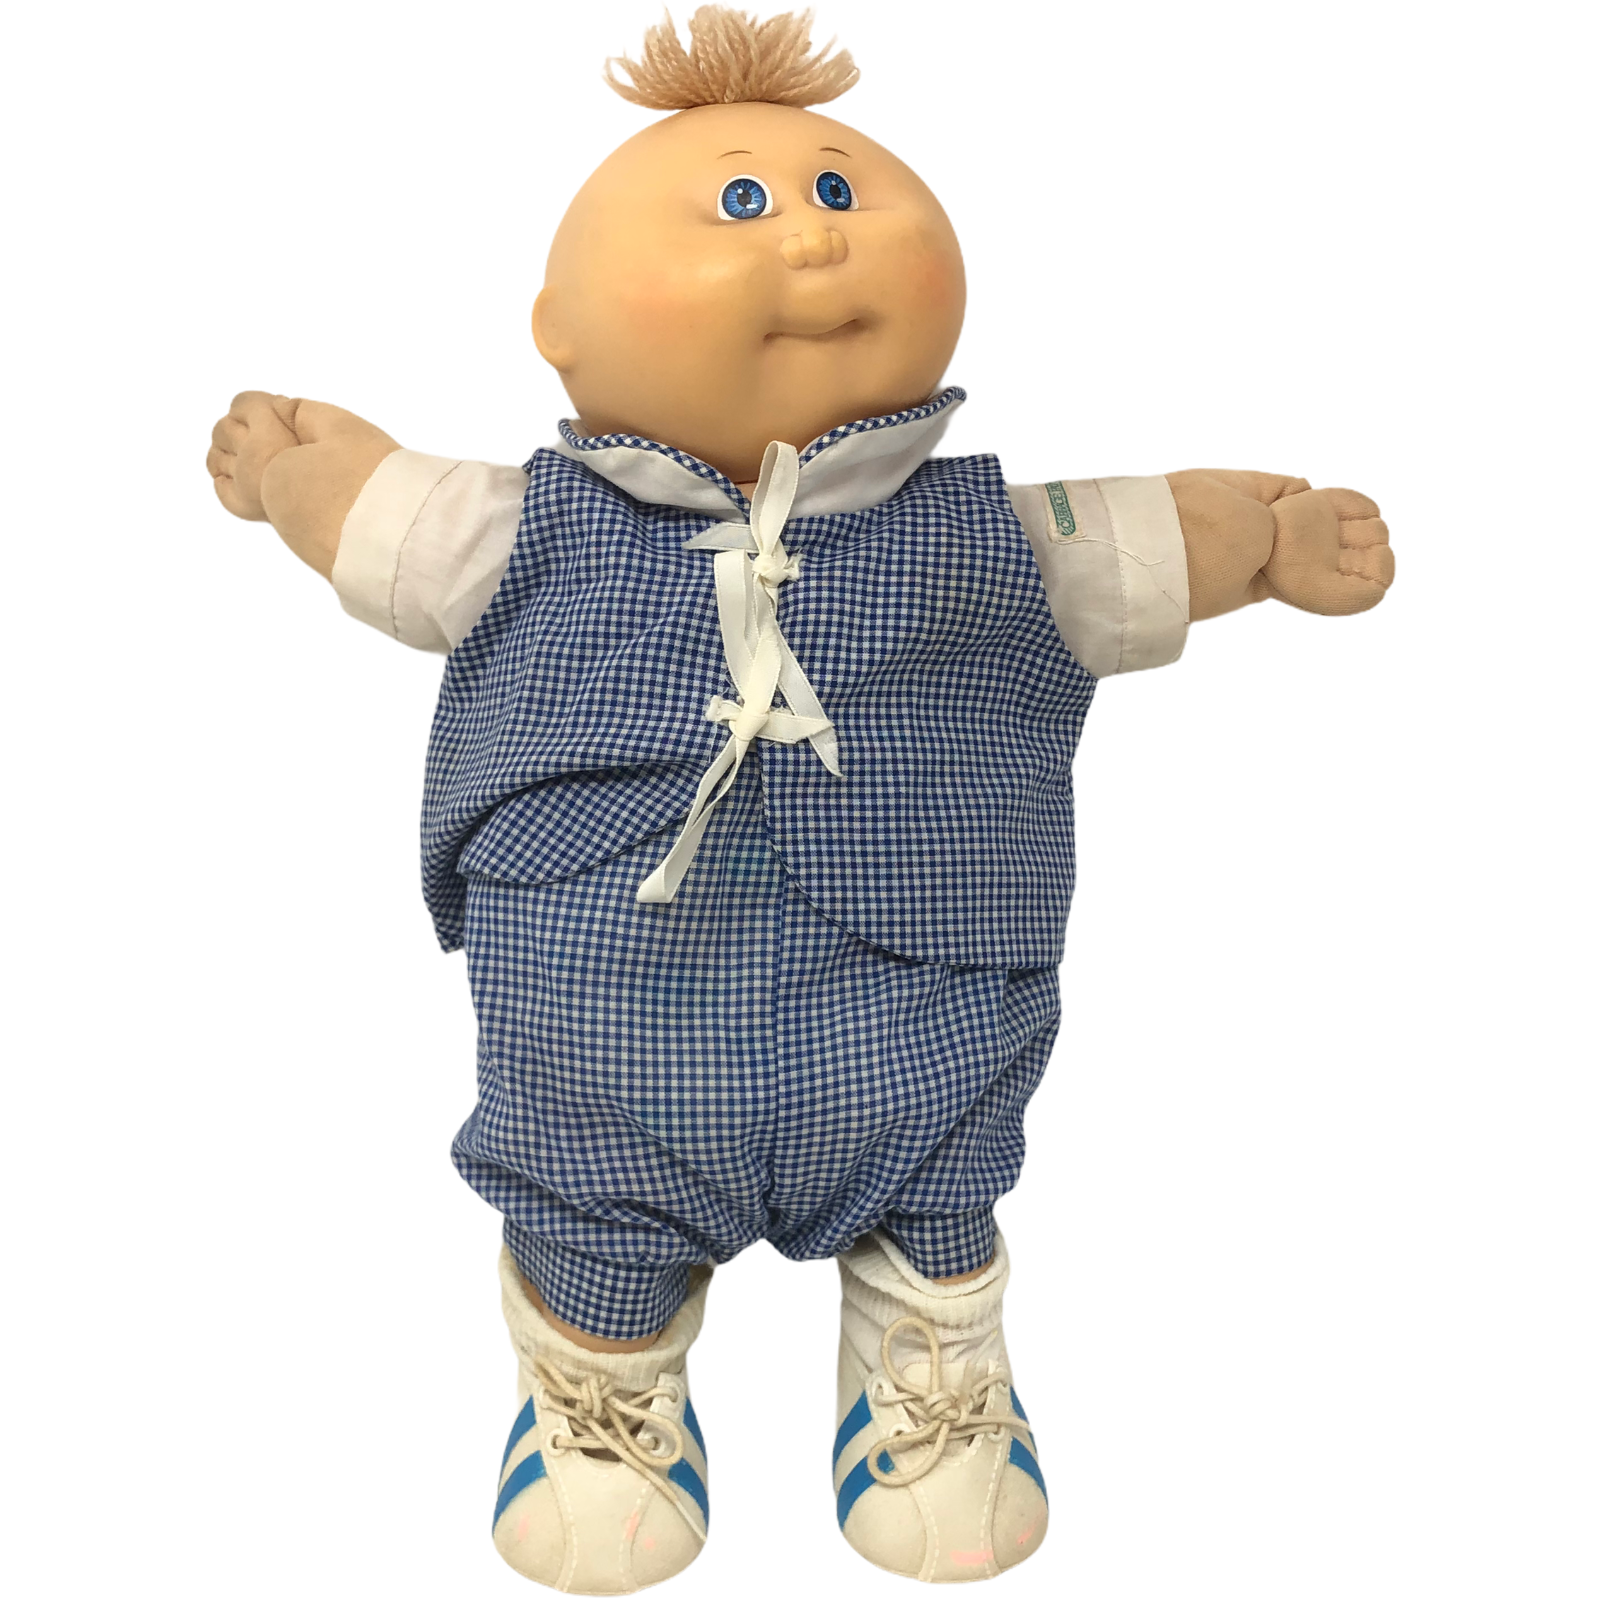 "Vintage 18"" Cabbage Patch Kids Baby Premiere Doll Shoes Blue Checkered Outfit - $98.99"